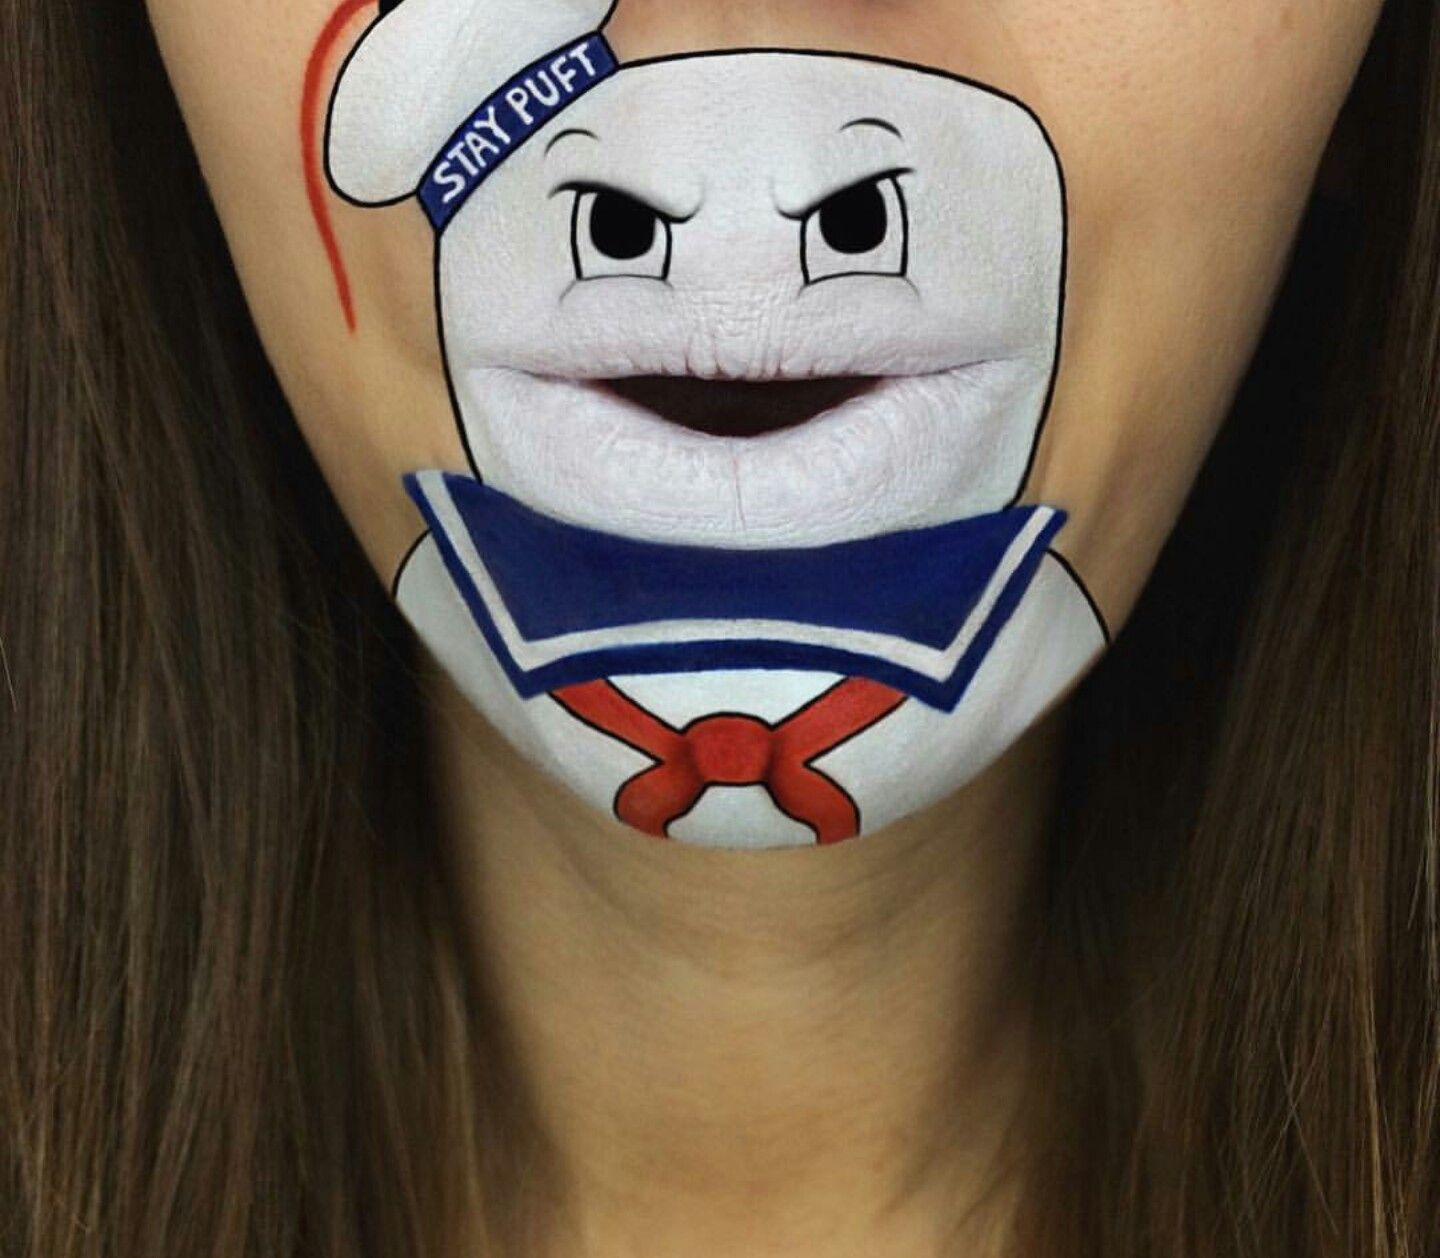 Marshmallows Man Ghostbuster Creative Mouth Painting Art By - Laura jenkinson mouth painting